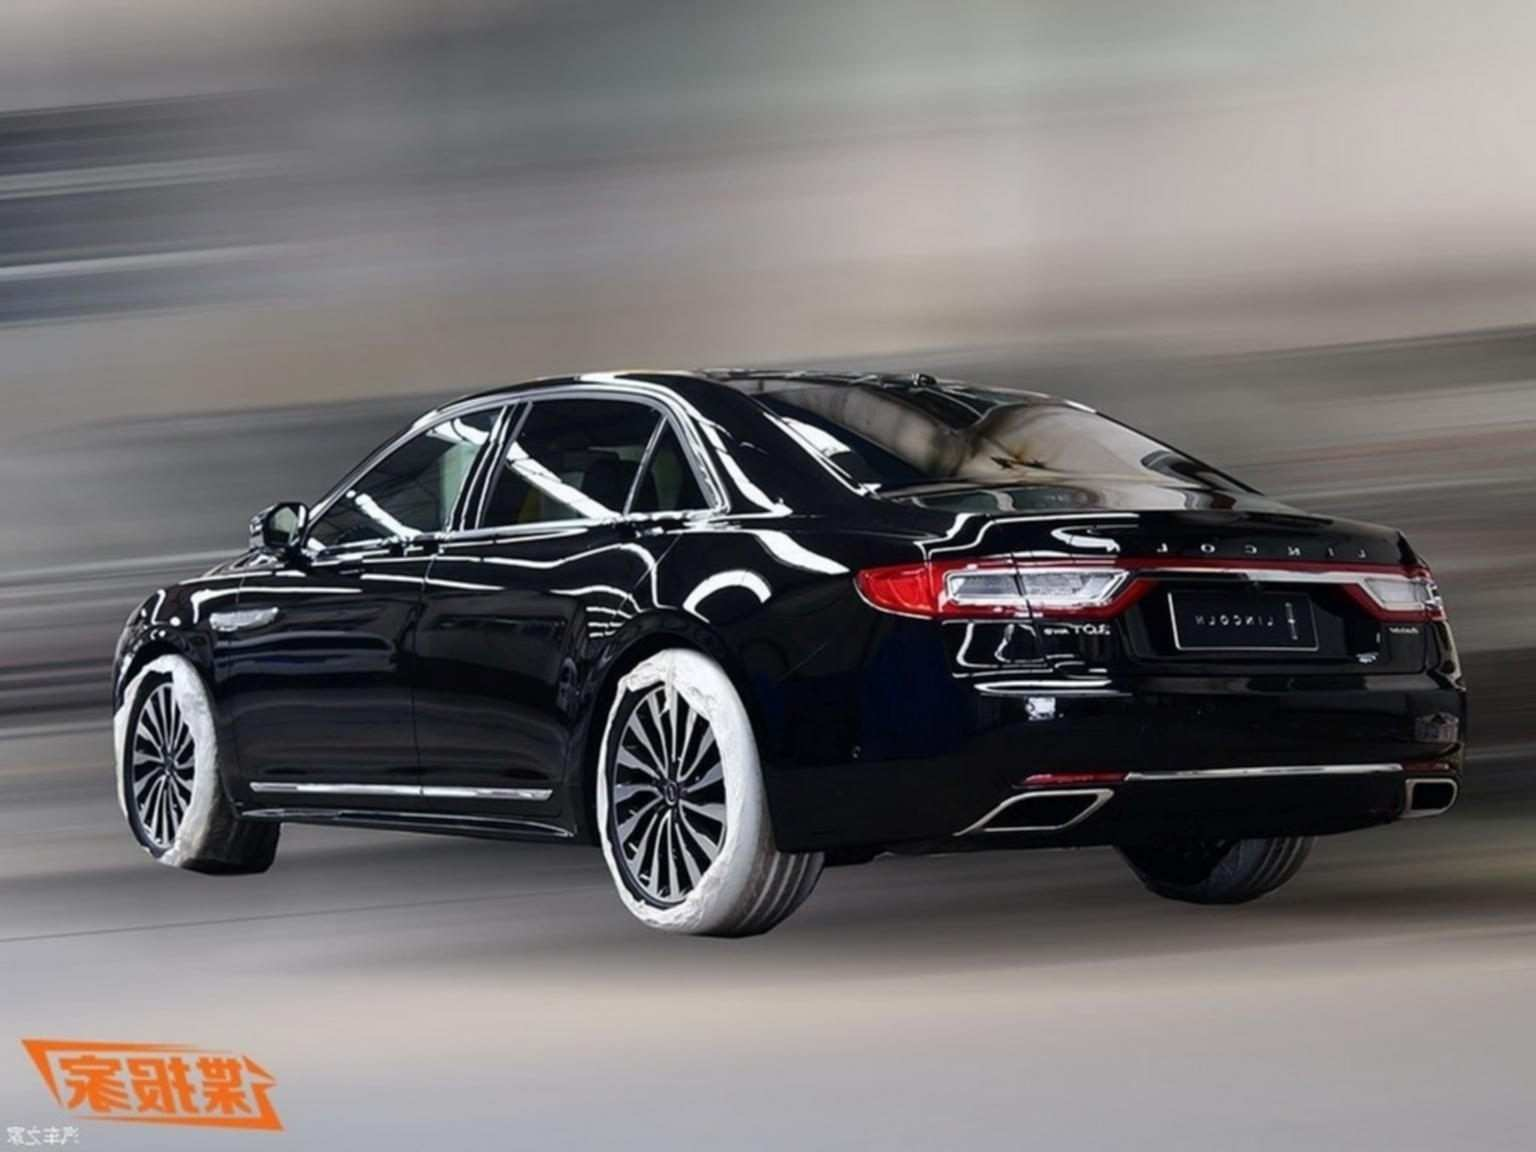 79 The Best 2020 The Lincoln Continental Images